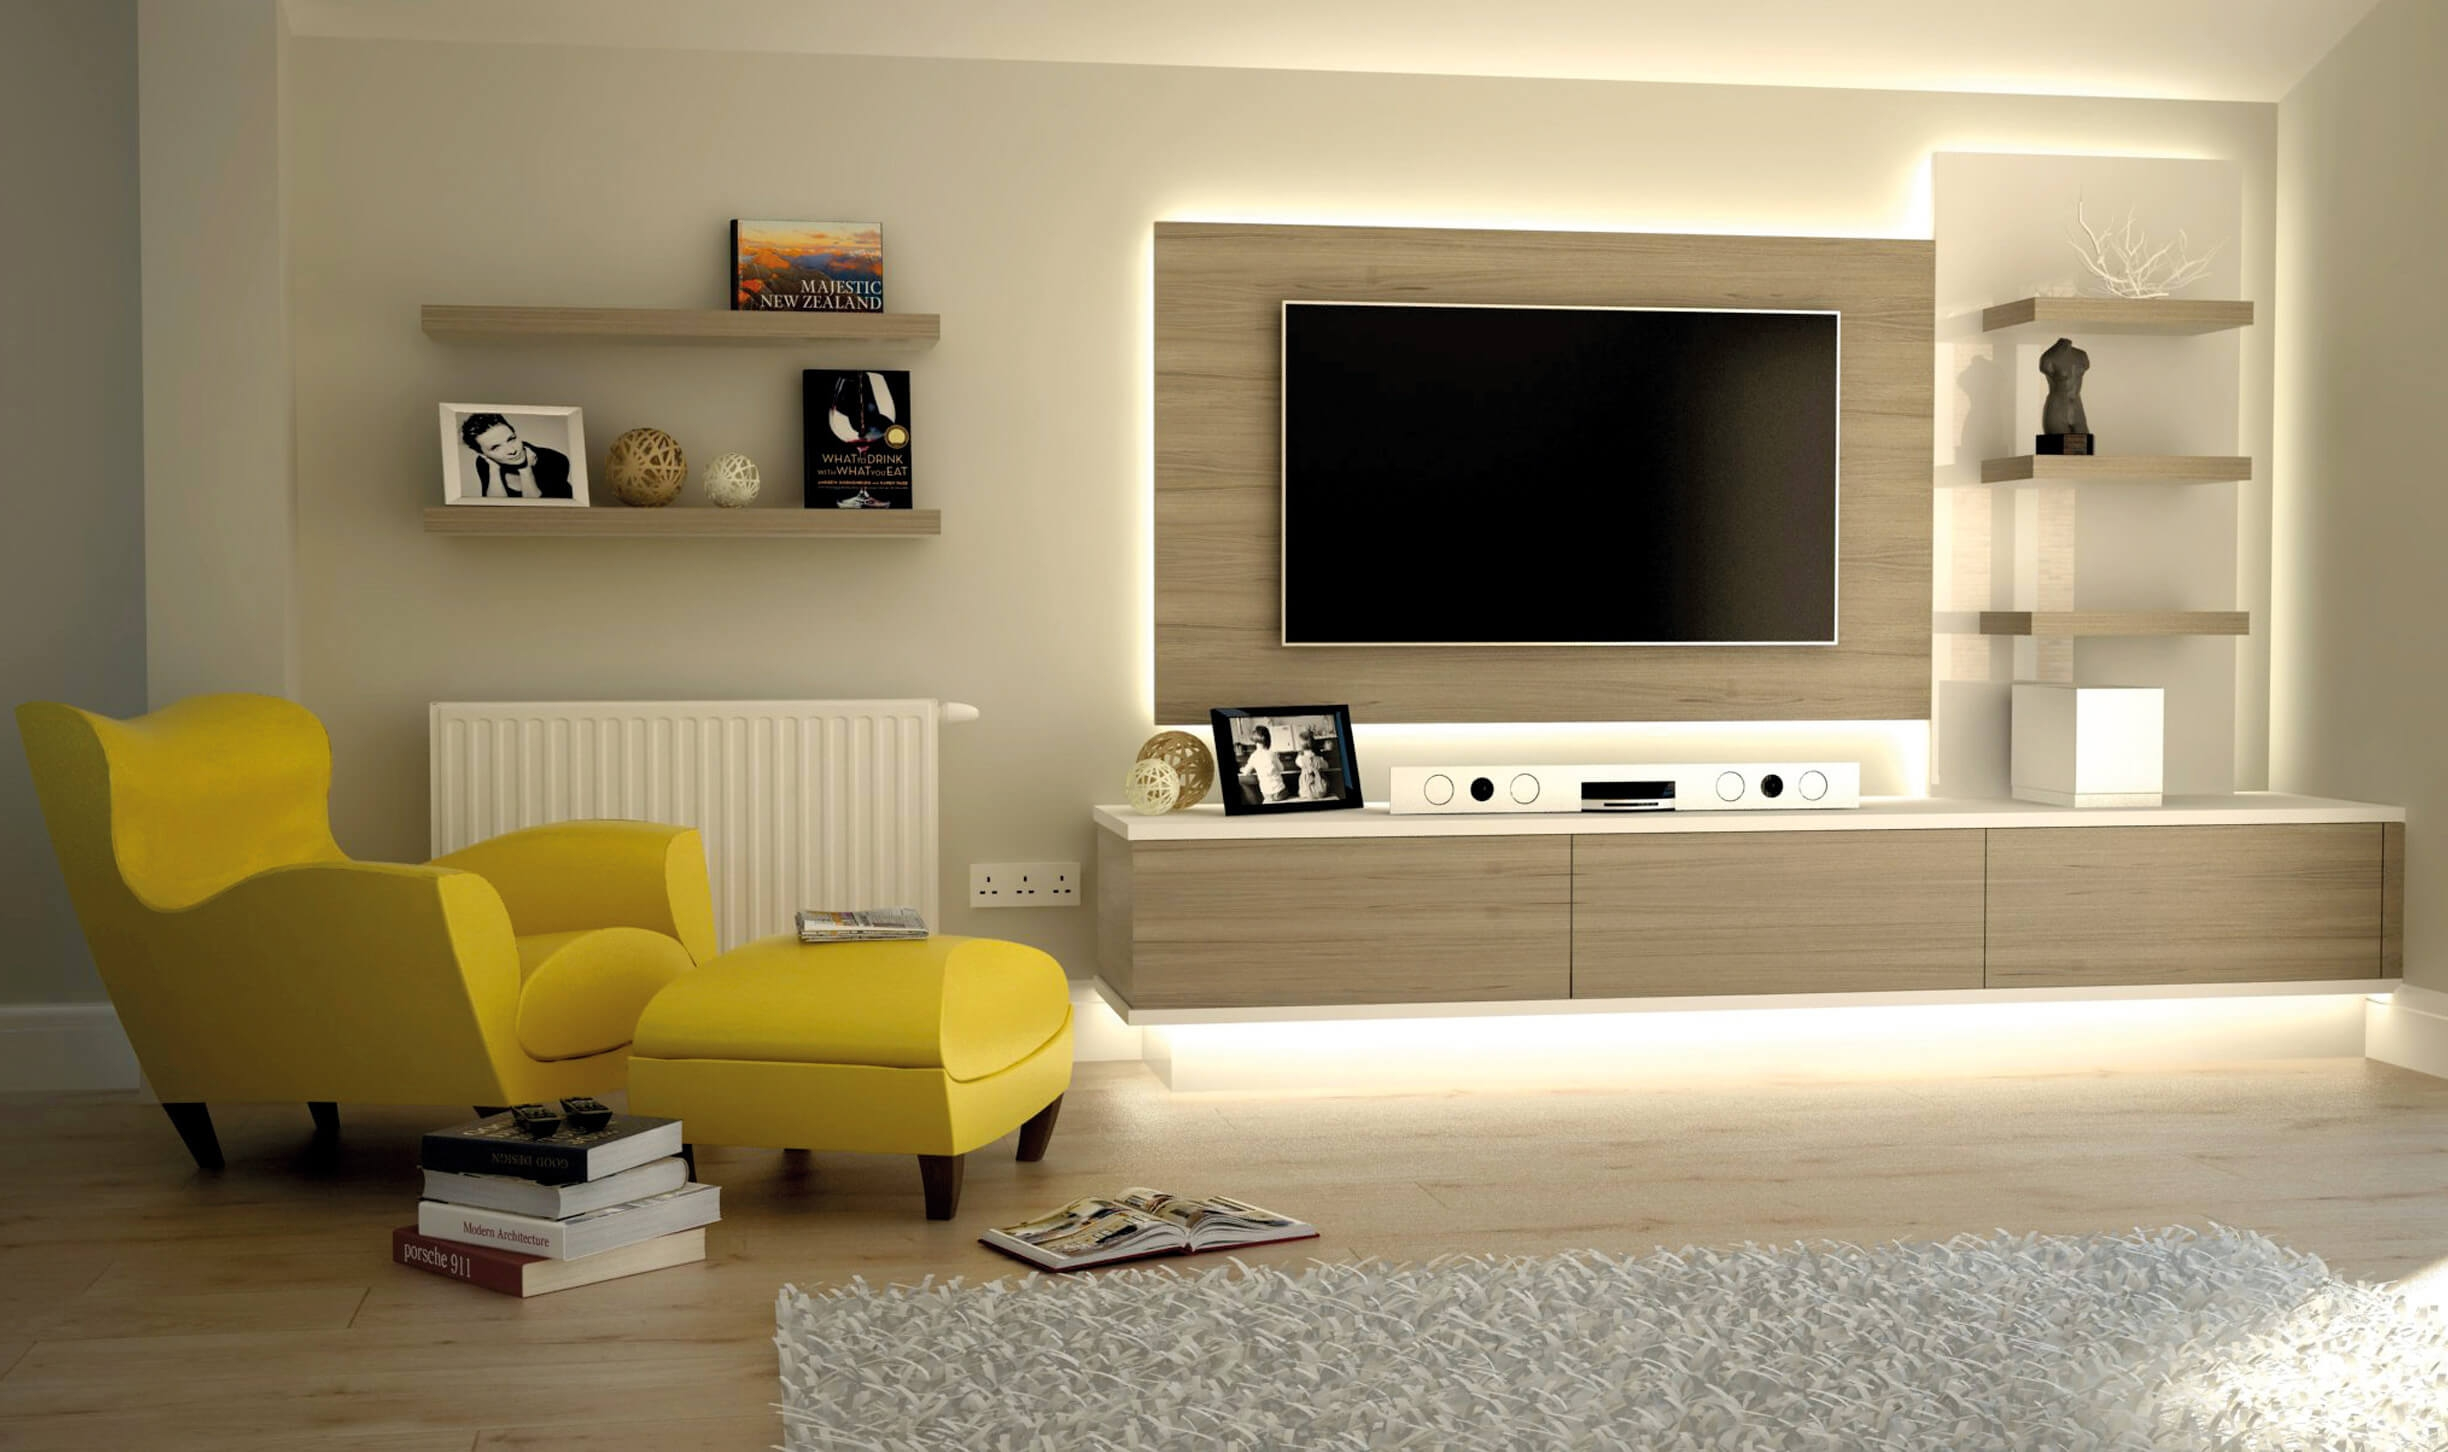 Bespoke Tv Cabinets Bookcases And Storage Units For Over 50 Within Bespoke Tv Stand (View 9 of 15)